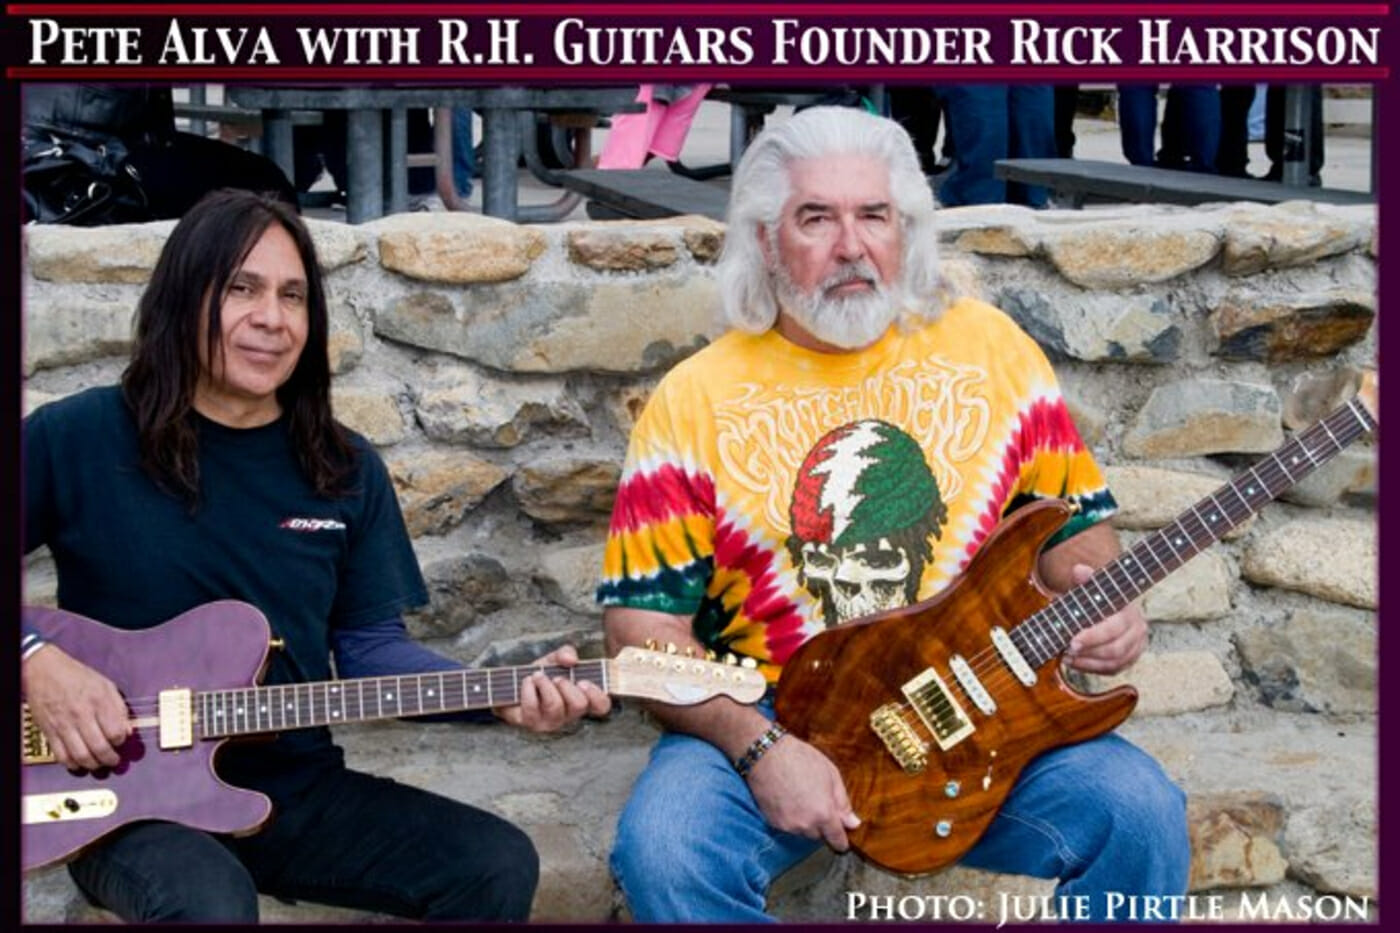 Pete Alva with RH Custom Guitars Founder Rick Harrison